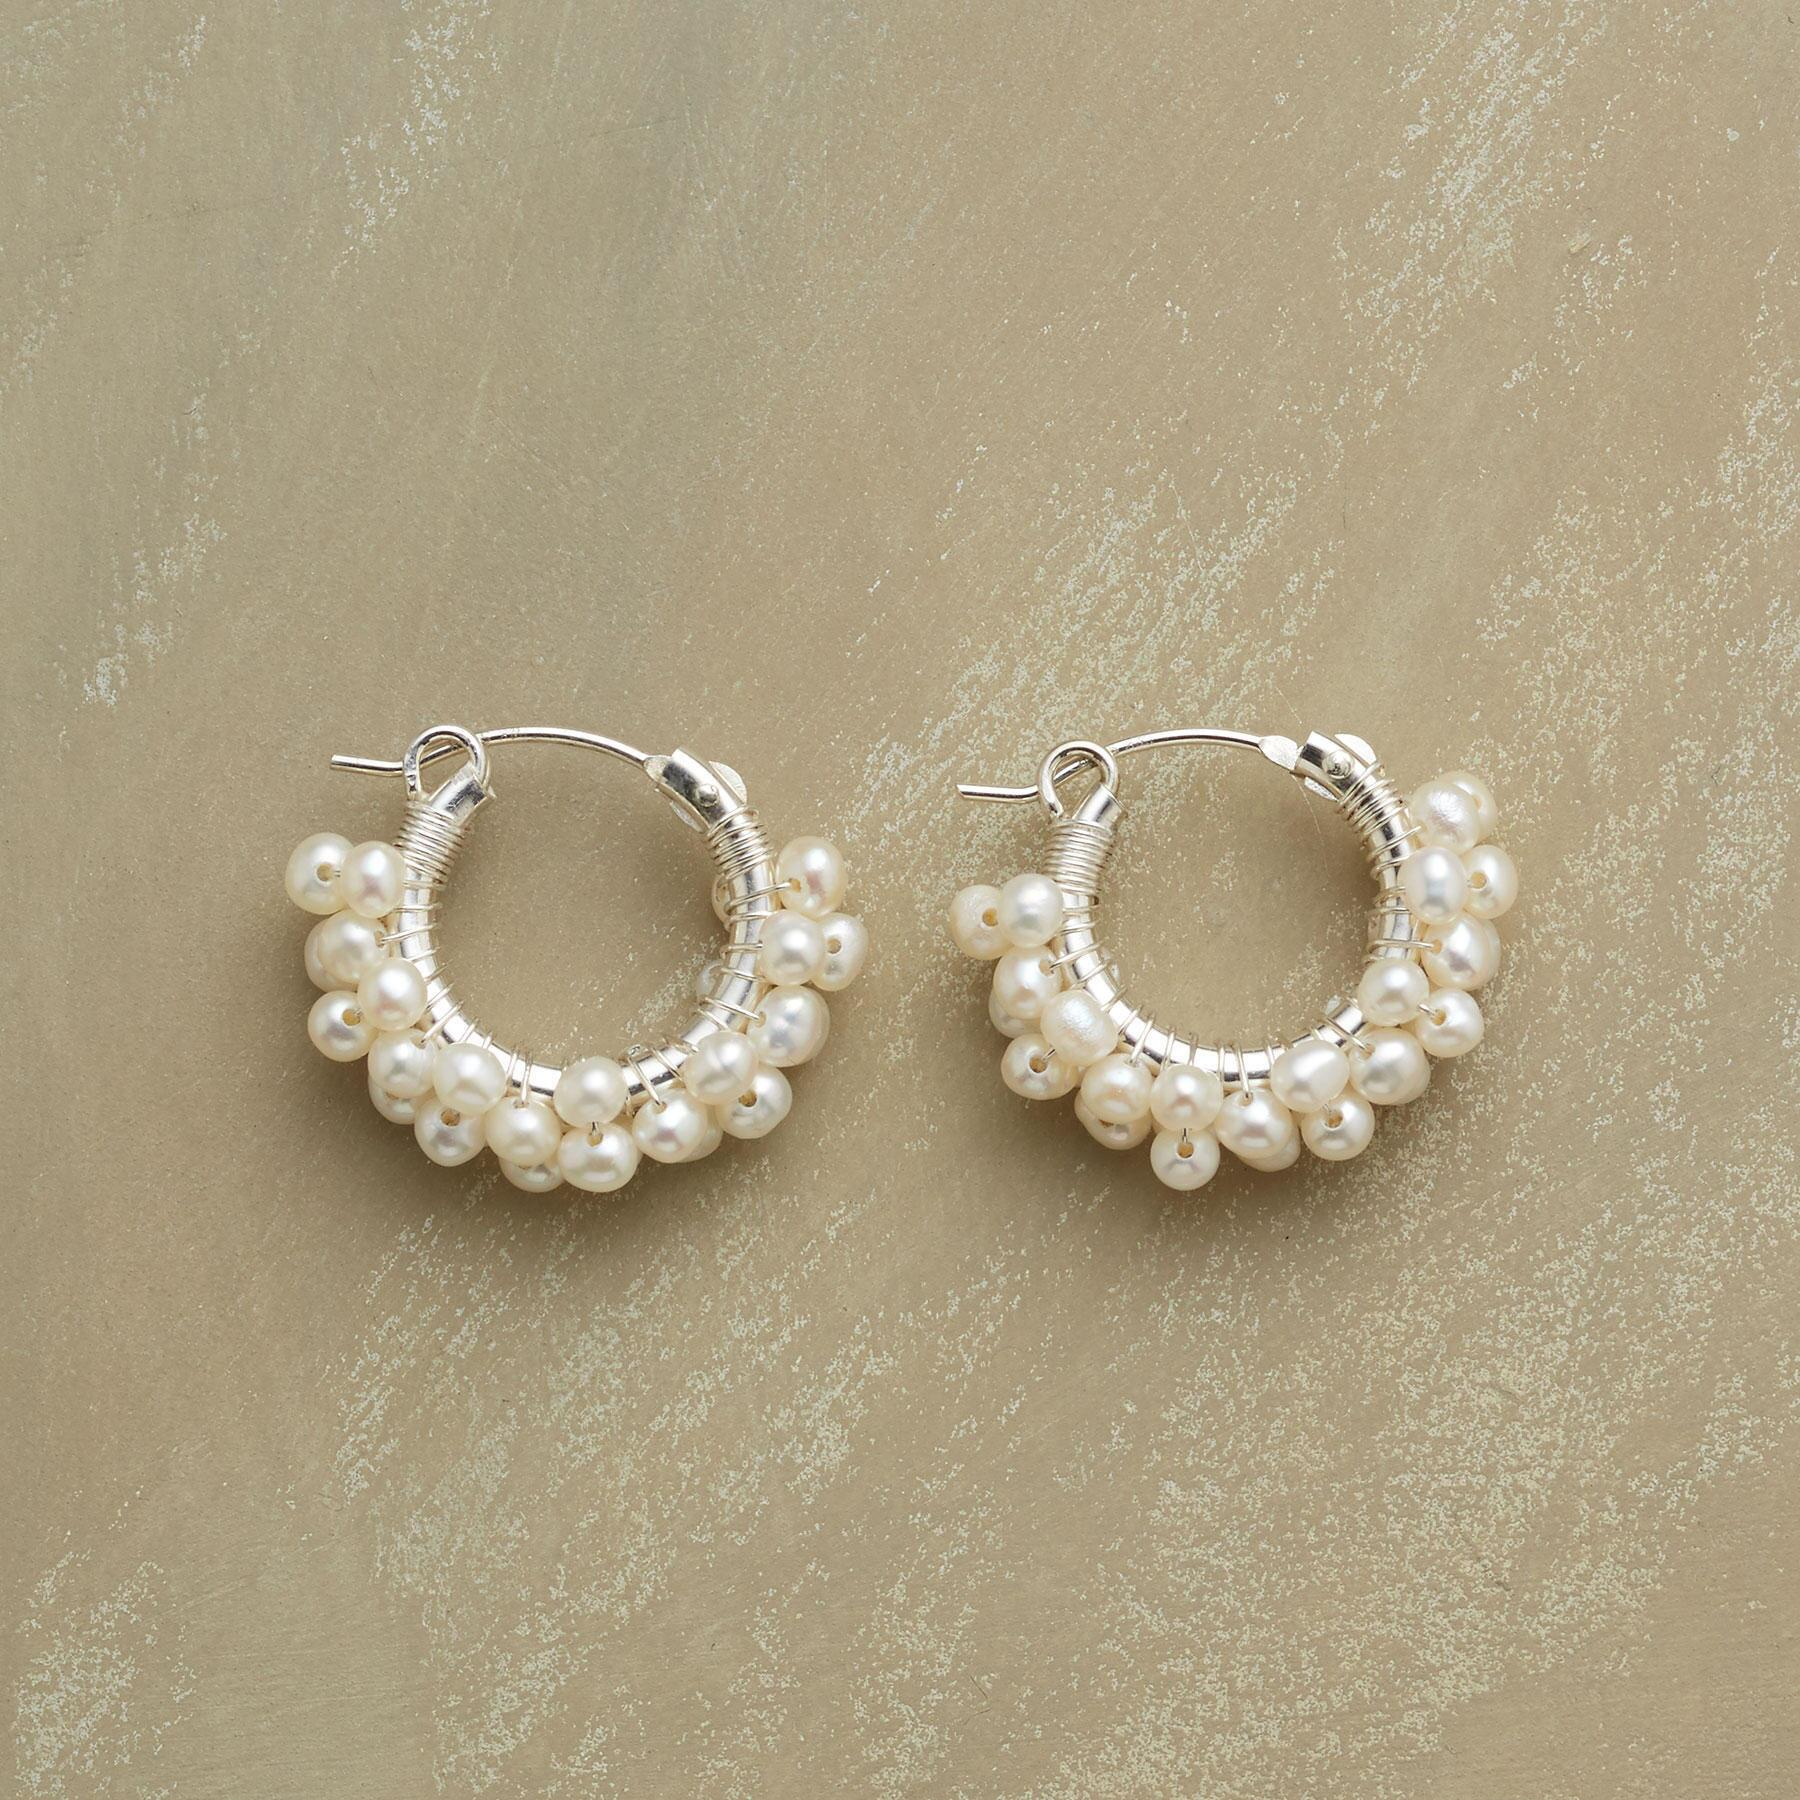 STERLING SILVER FROTH OF PEARLS EARRINGS: View 1